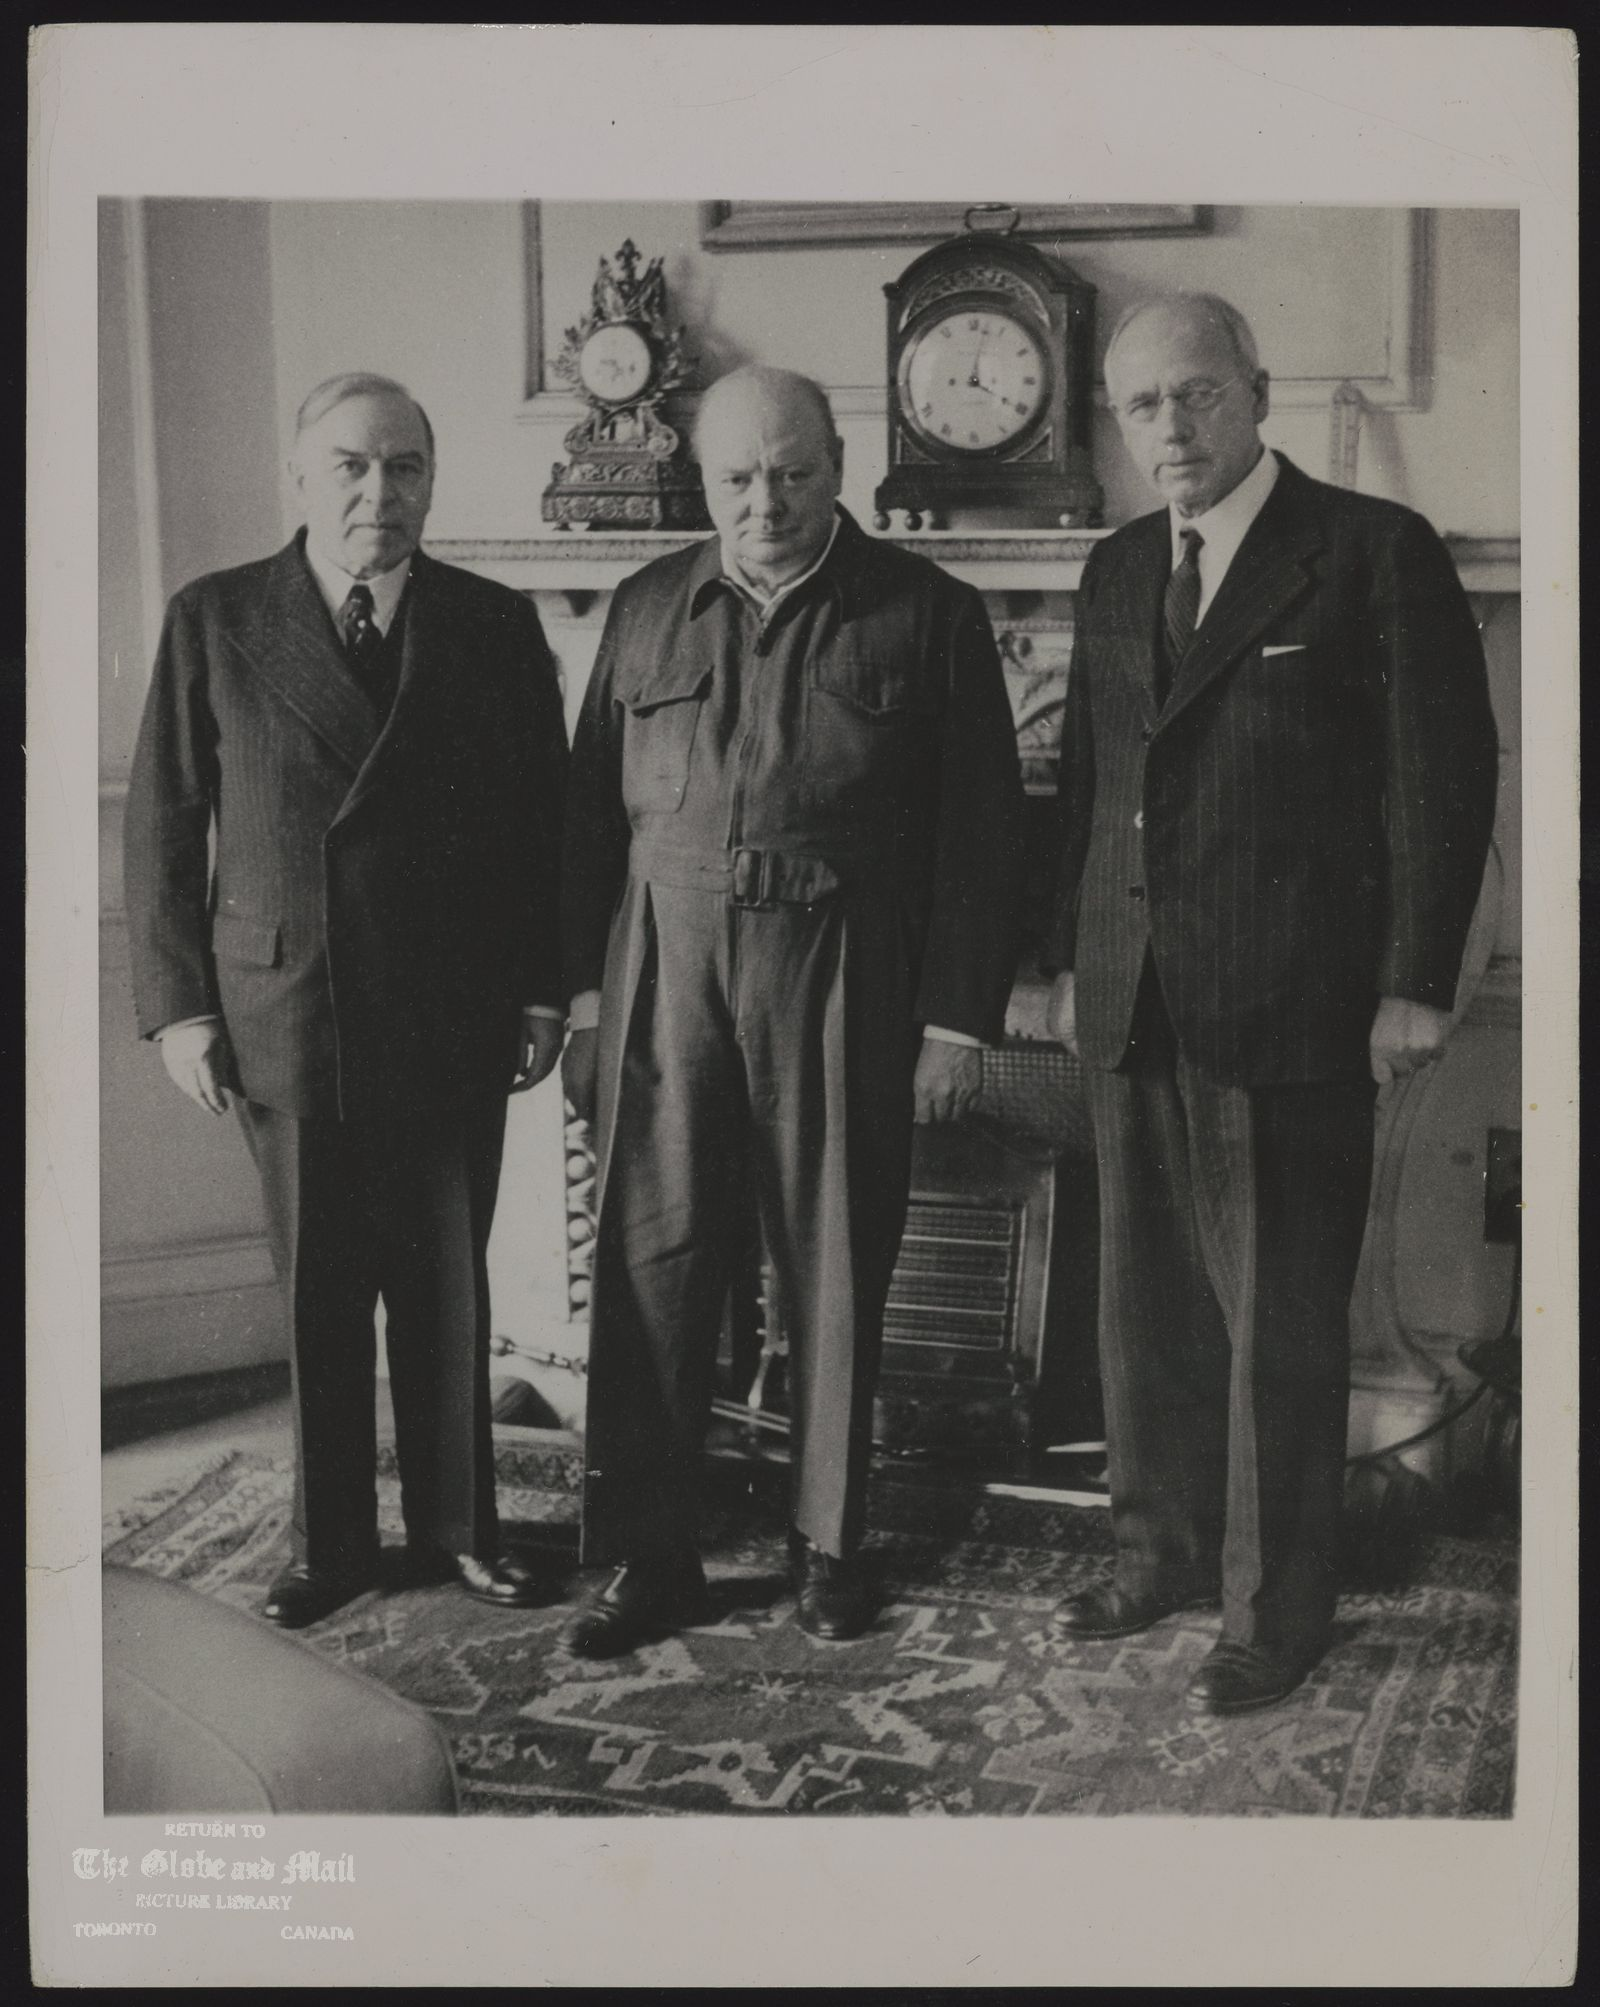 COMMONWEALTH PRIME MINISTERS MEET THREE PRIME MINISTERS OF THE BRITISH COMMONWEALTH OF NATIONS MET AT NO. 10 DOWNING ST., LONDON, APRIL 28TH TO DISCUSS EMPIRE PROBLEMS. LEFT TO RIGHT ARE; MACKENZIE KING, PRIME MINISTER OF CANADA; WINSTON CHURCHILL, PREMIER OF GREAT BRITAIN; AND PETER FRASER, PRIME MINISTER OF NEW ZEALAND. FRASER AND KING WERE THE FIRST PRIME MINISTERS TO ARRIVE. ASSOCIATED PRESS PHOTO 39 AK 5/5/44 820 PEW LON CAN FLS TMC PA AUS NZEAL JOH